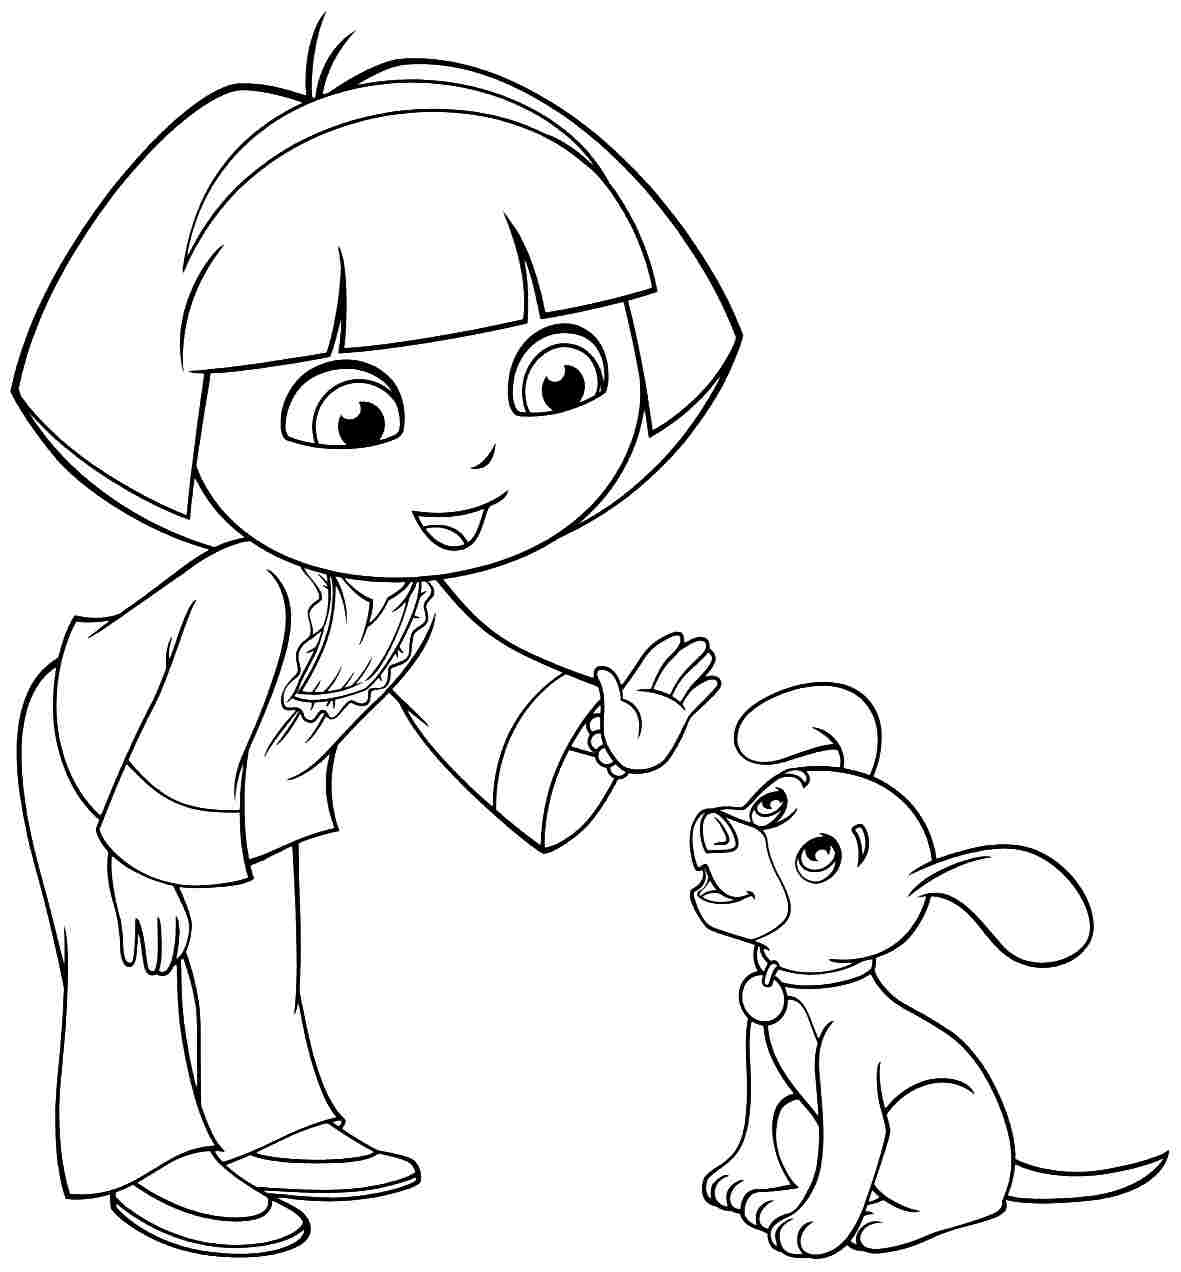 coloring pages dora and friends kids n funcom 6 coloring pages of dora and friends pages and dora friends coloring